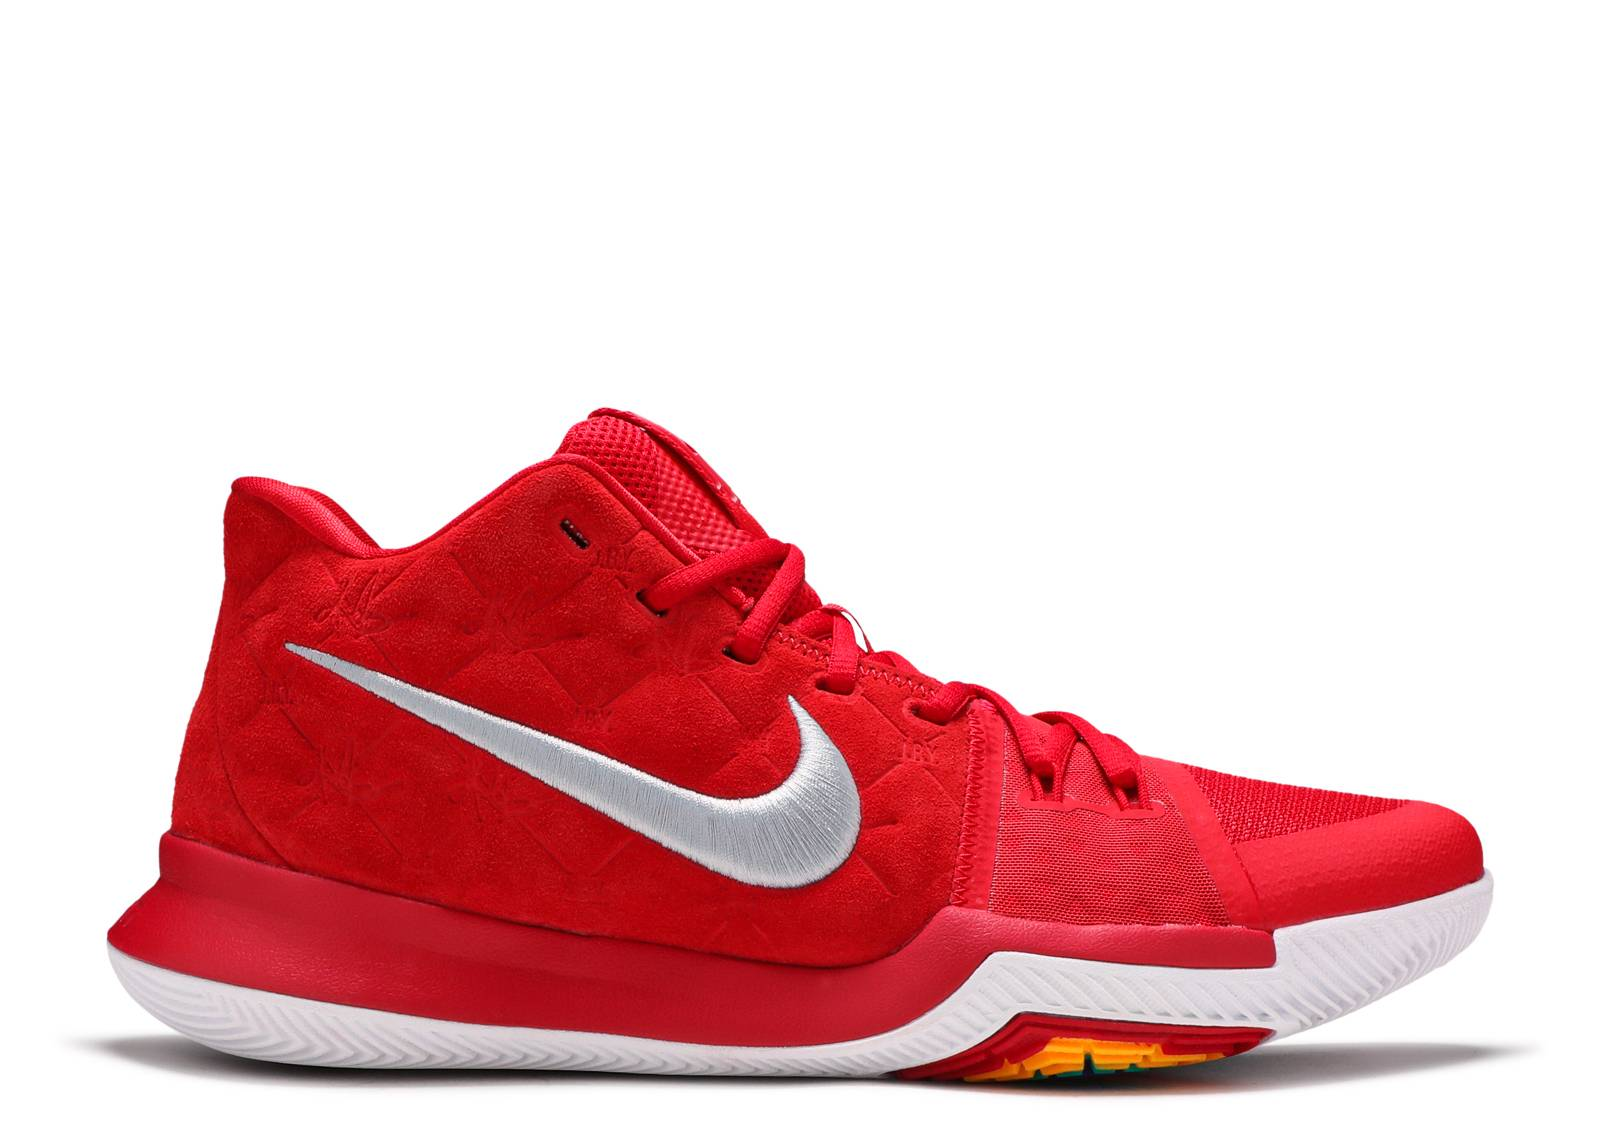 56457e11744f Kyrie 3 - Nike - 852395 601 - university red university red-wolf ...